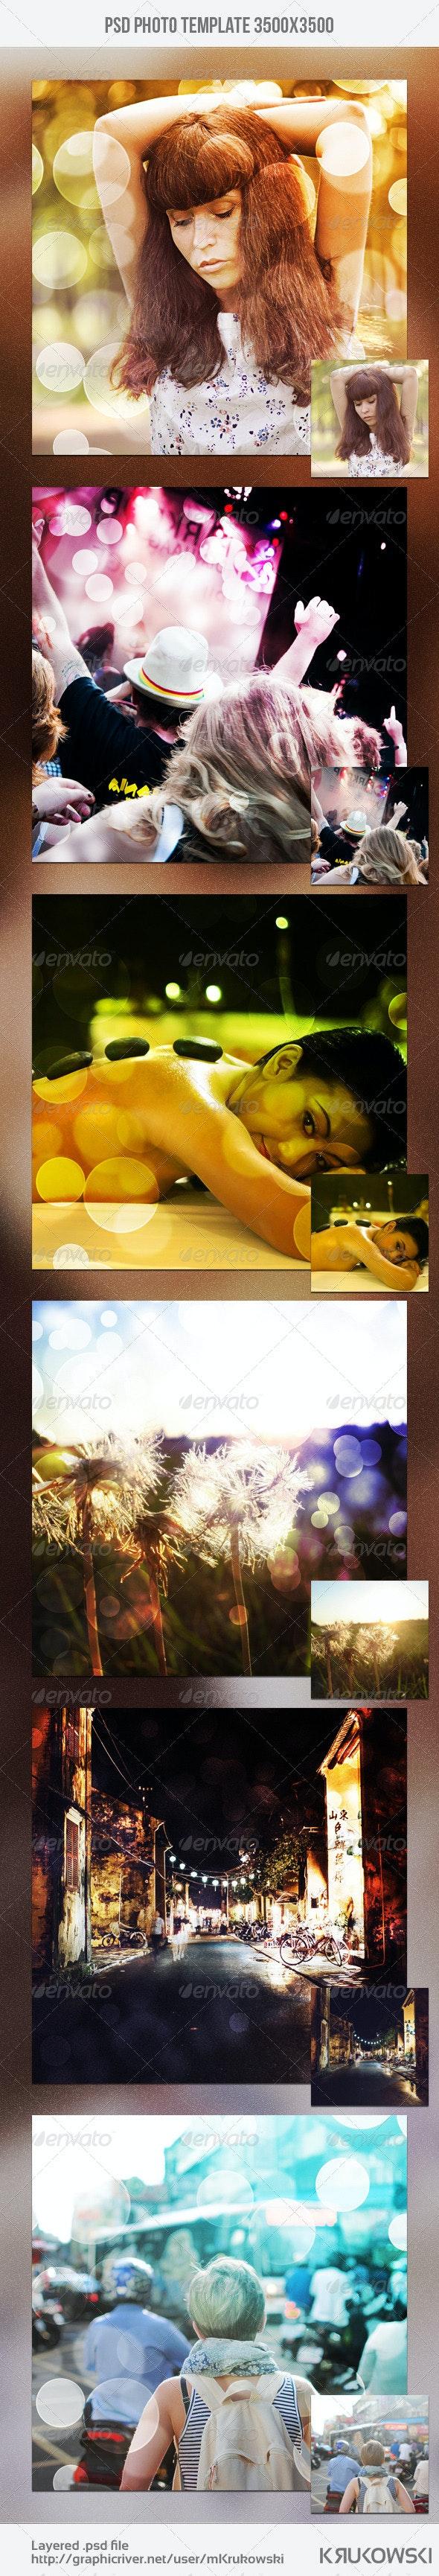 Bokeh Photo Template - Artistic Photo Templates